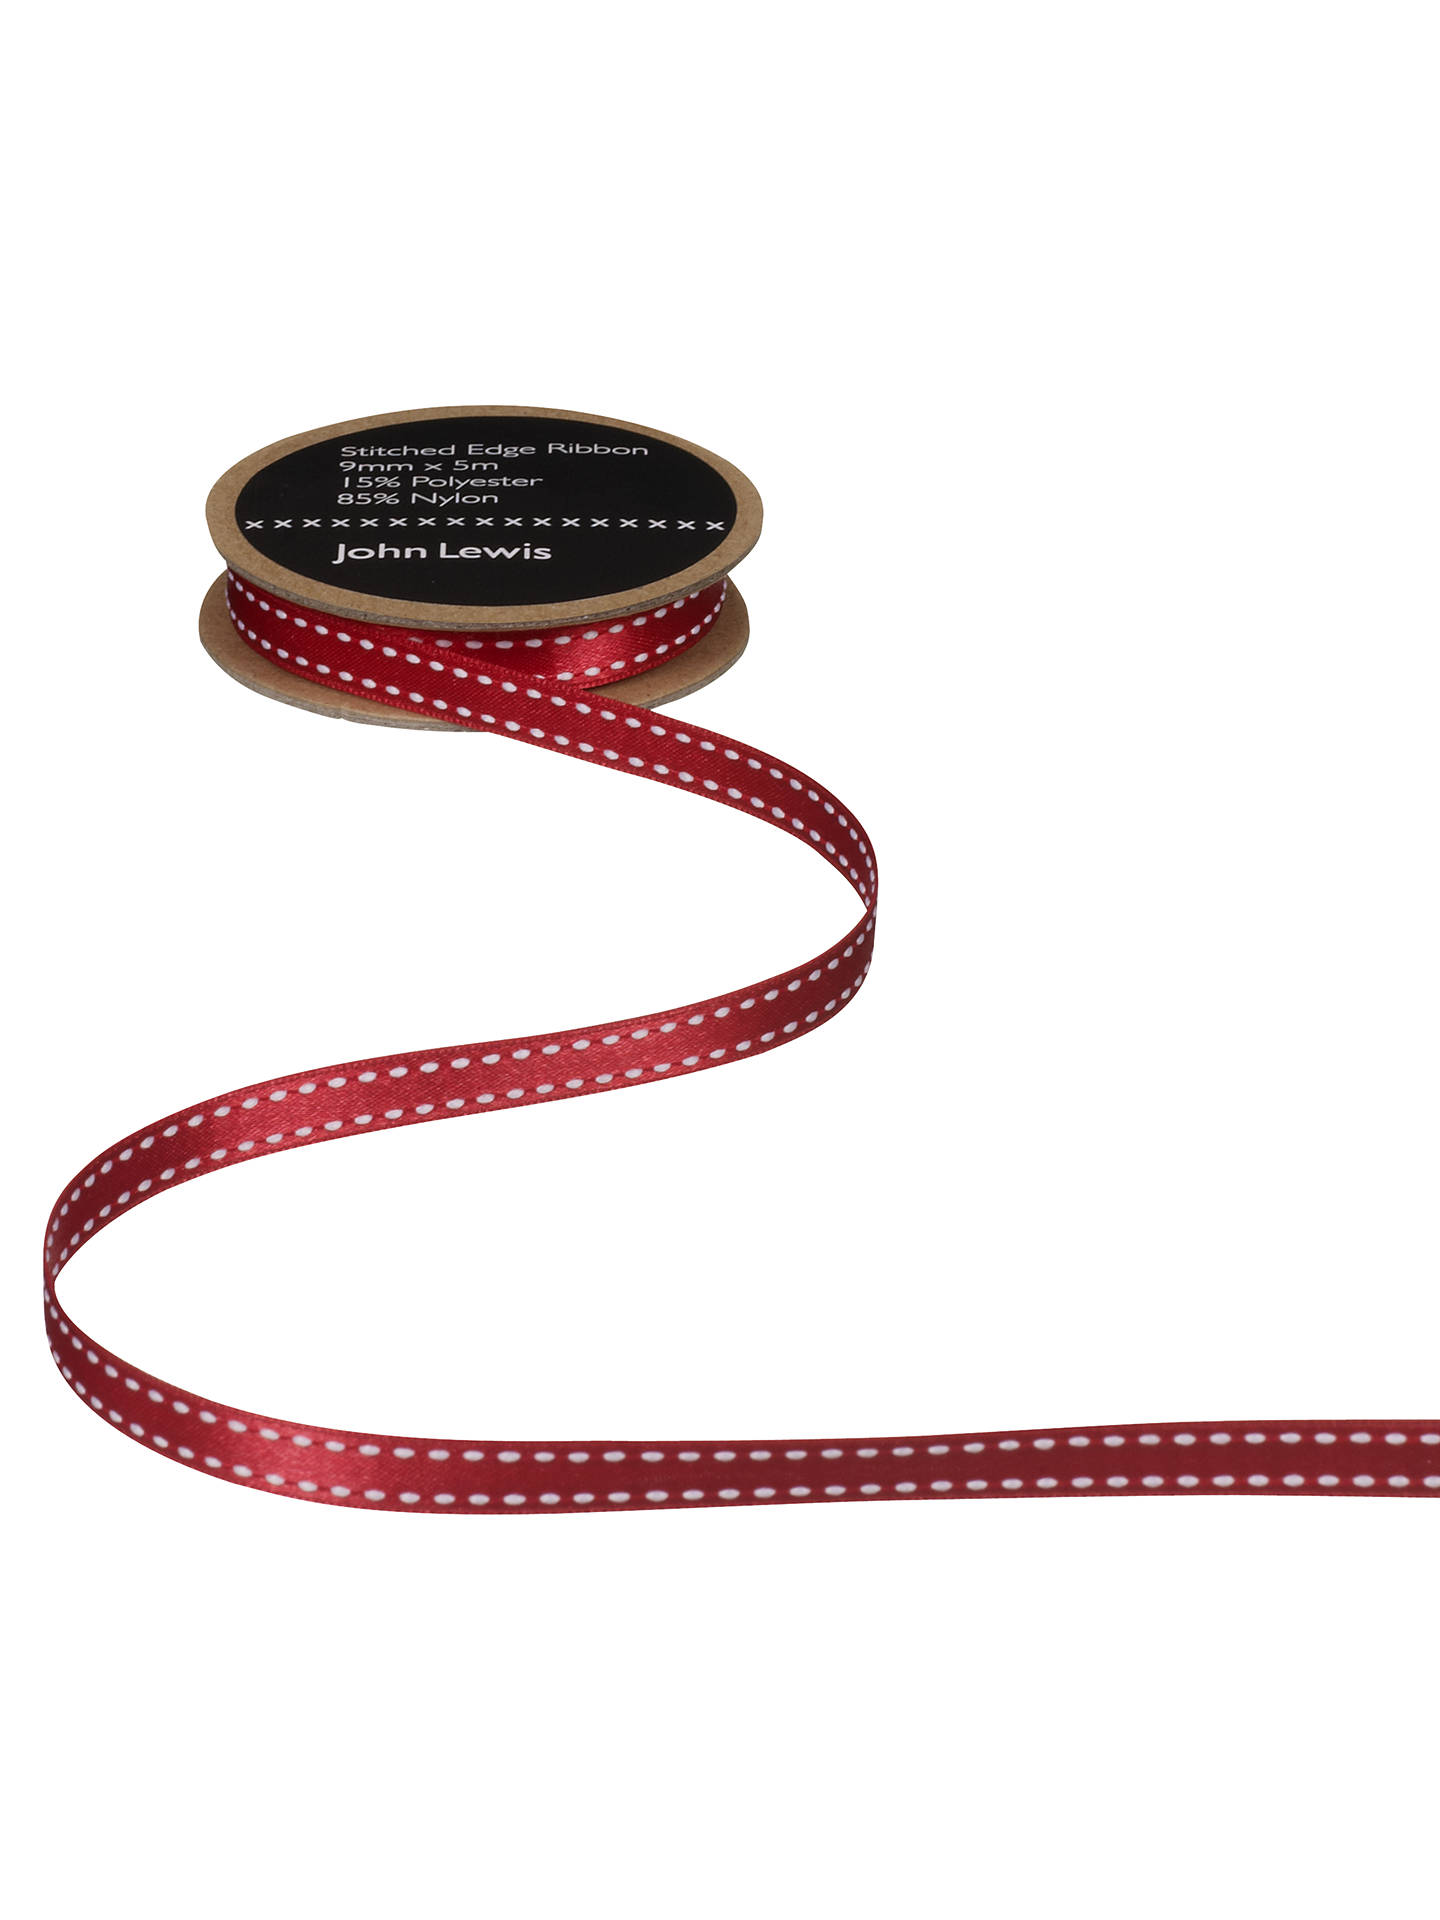 BuyJohn Lewis & Partners Stitched Edge Ribbon, White/Red, 9mm Online at johnlewis.com